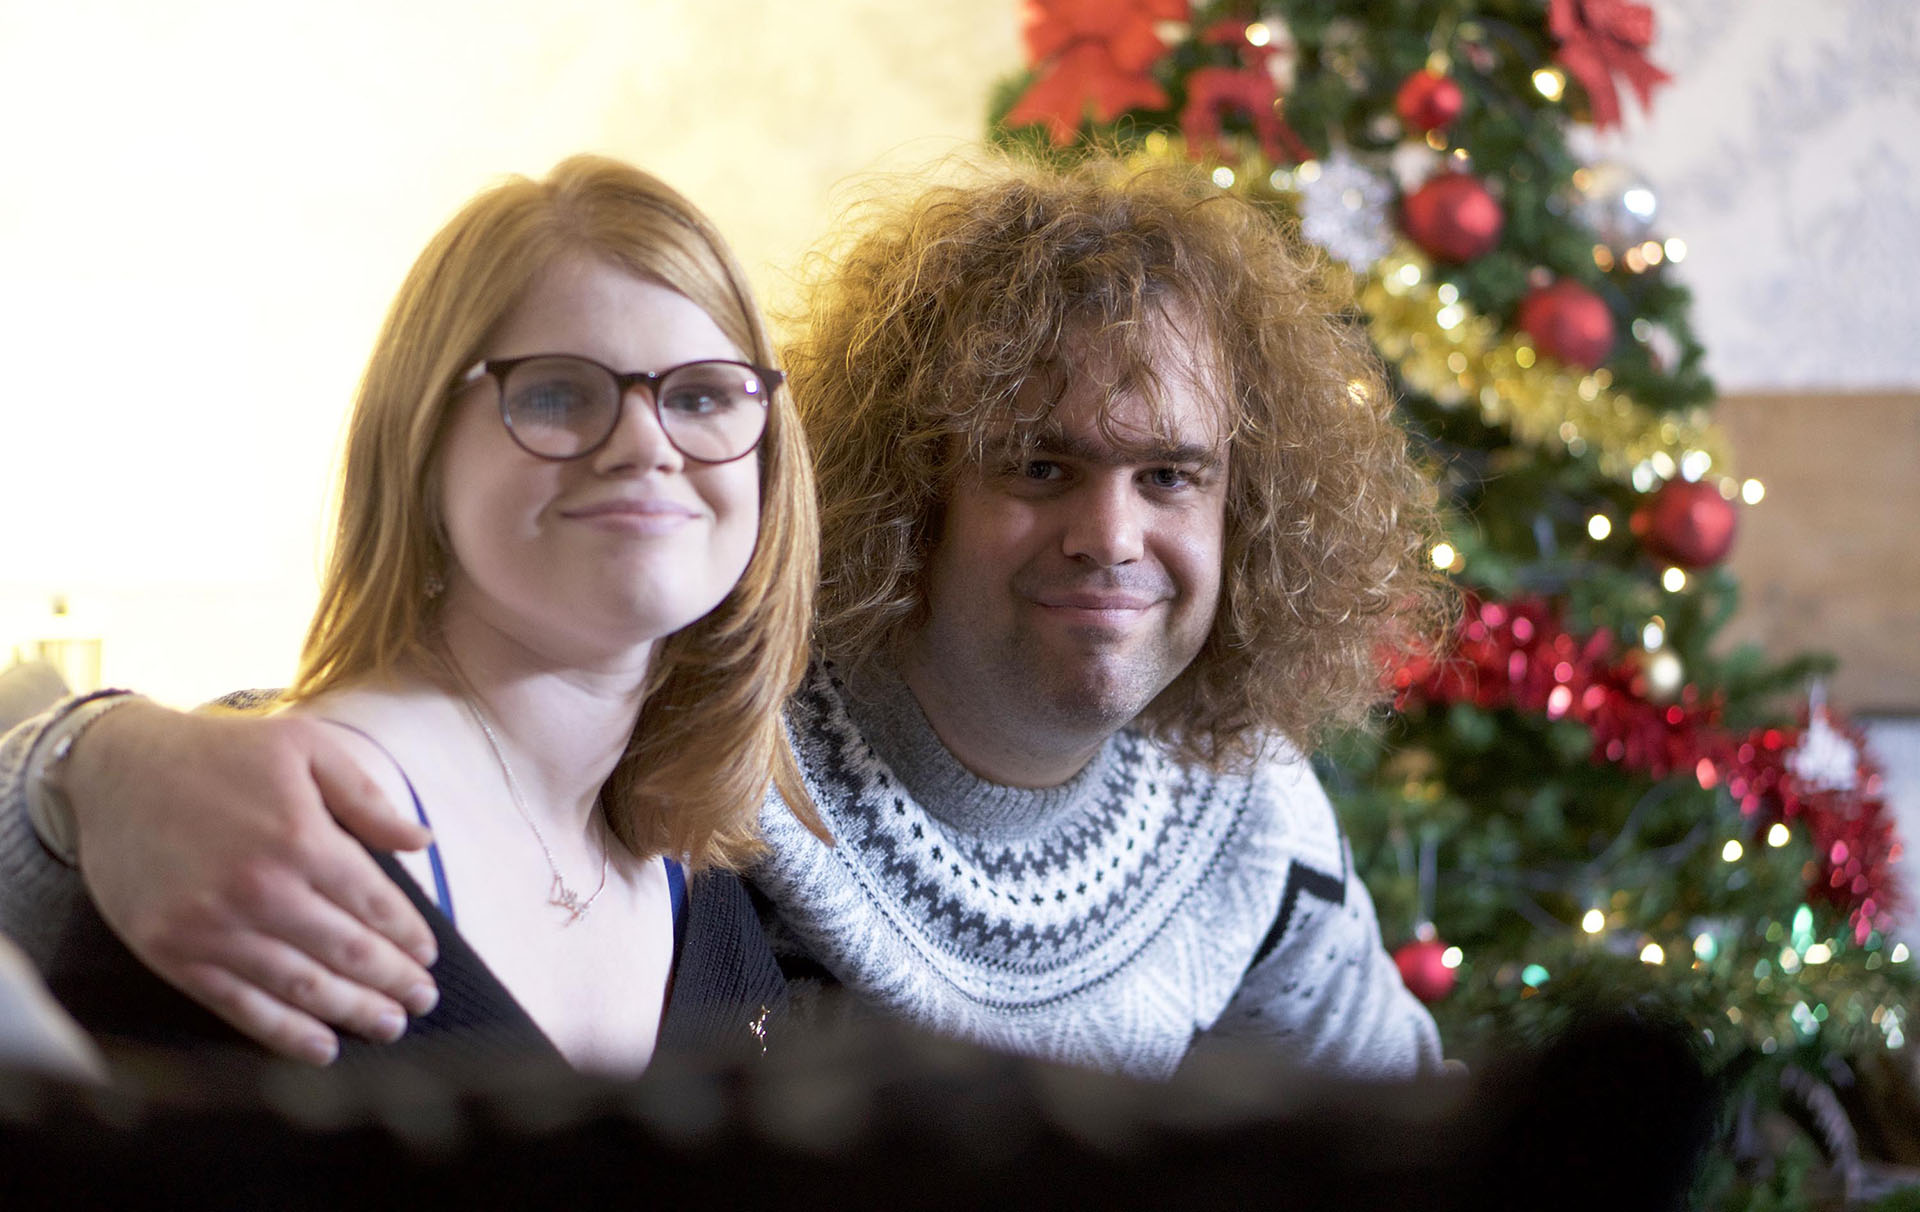 Undateables Daniel Wakeford Lily Taylor engaged